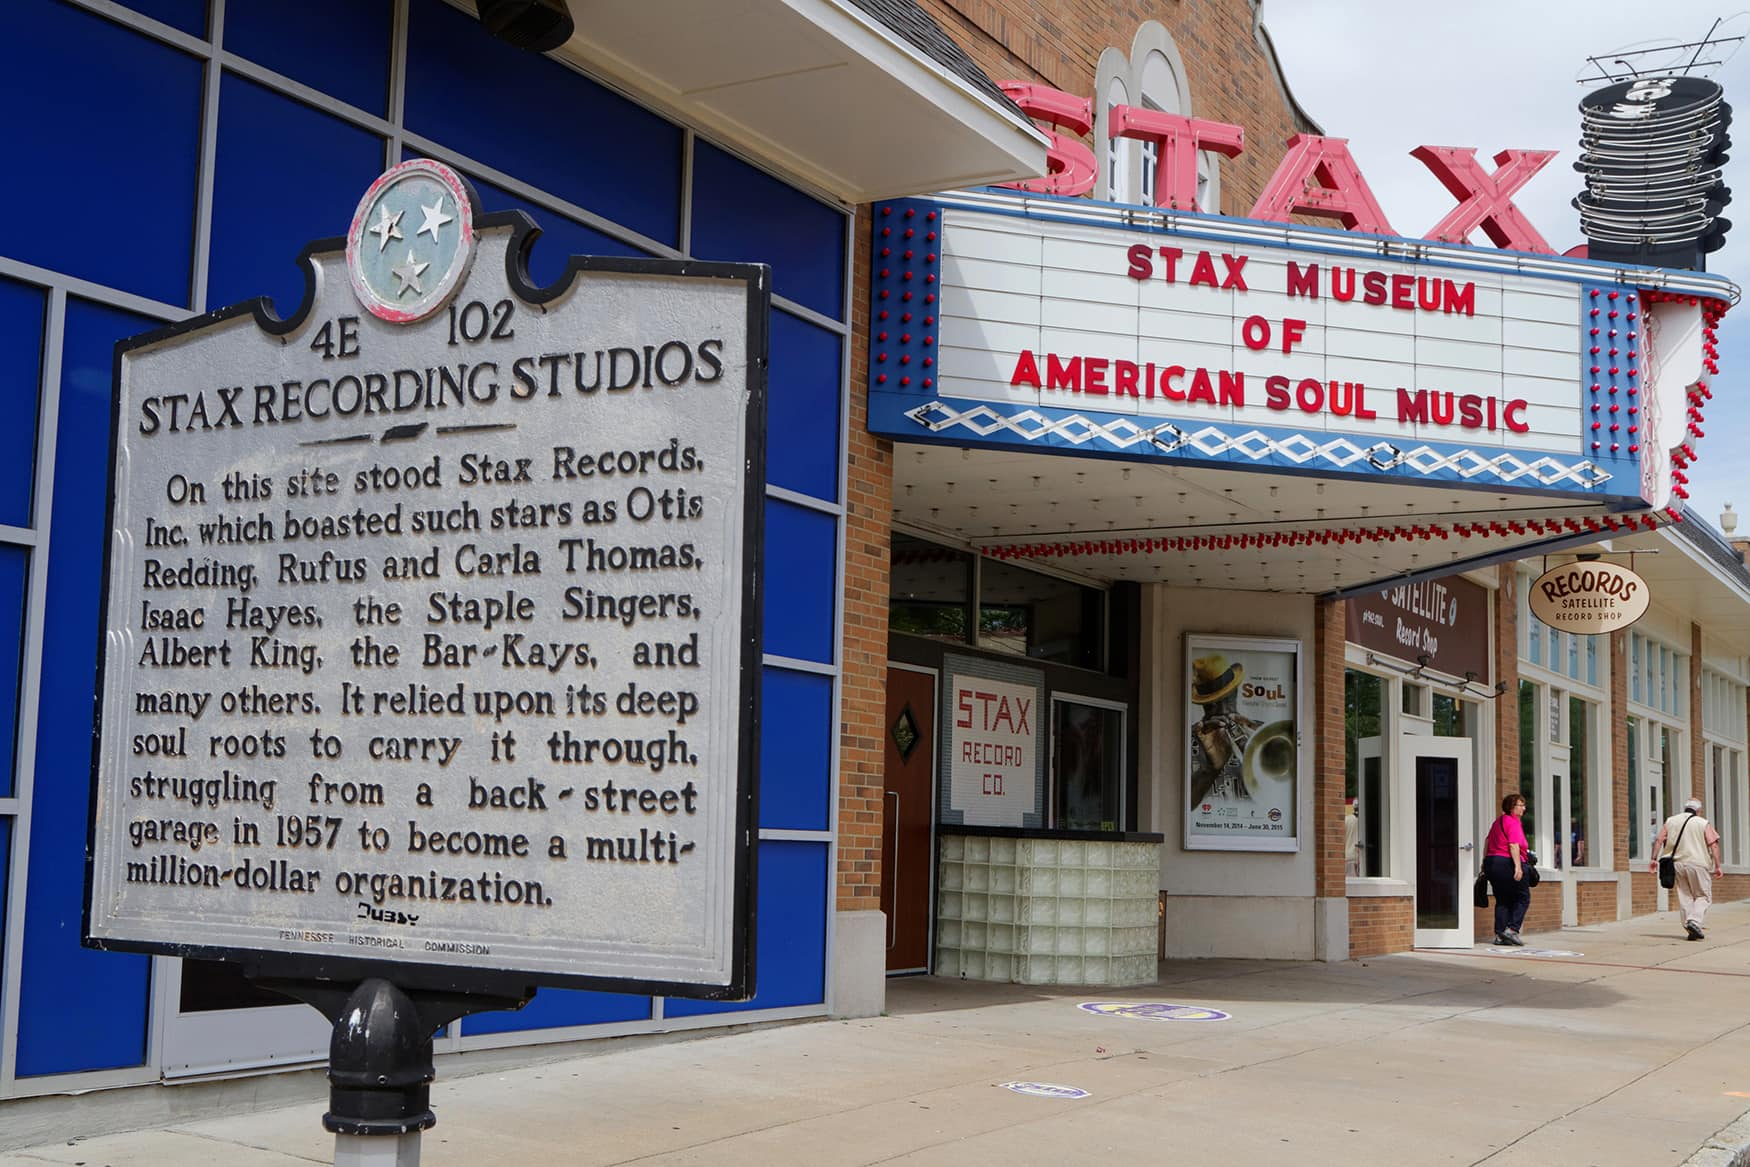 Eingang des Stax Museums in Memphis